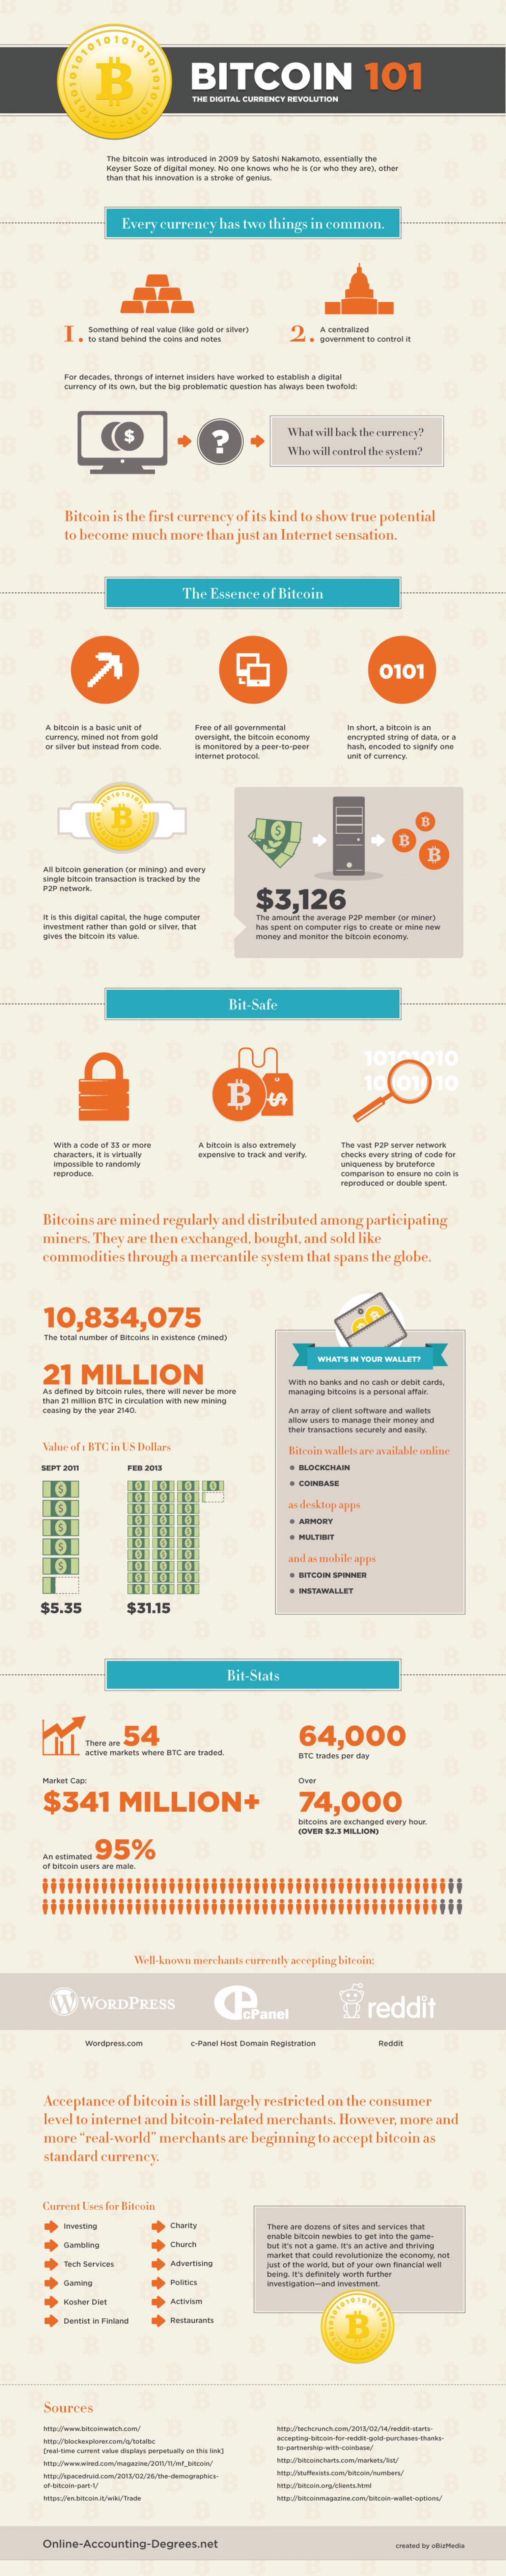 Bitcoin 101: The Digital Currency Revolution Infographic